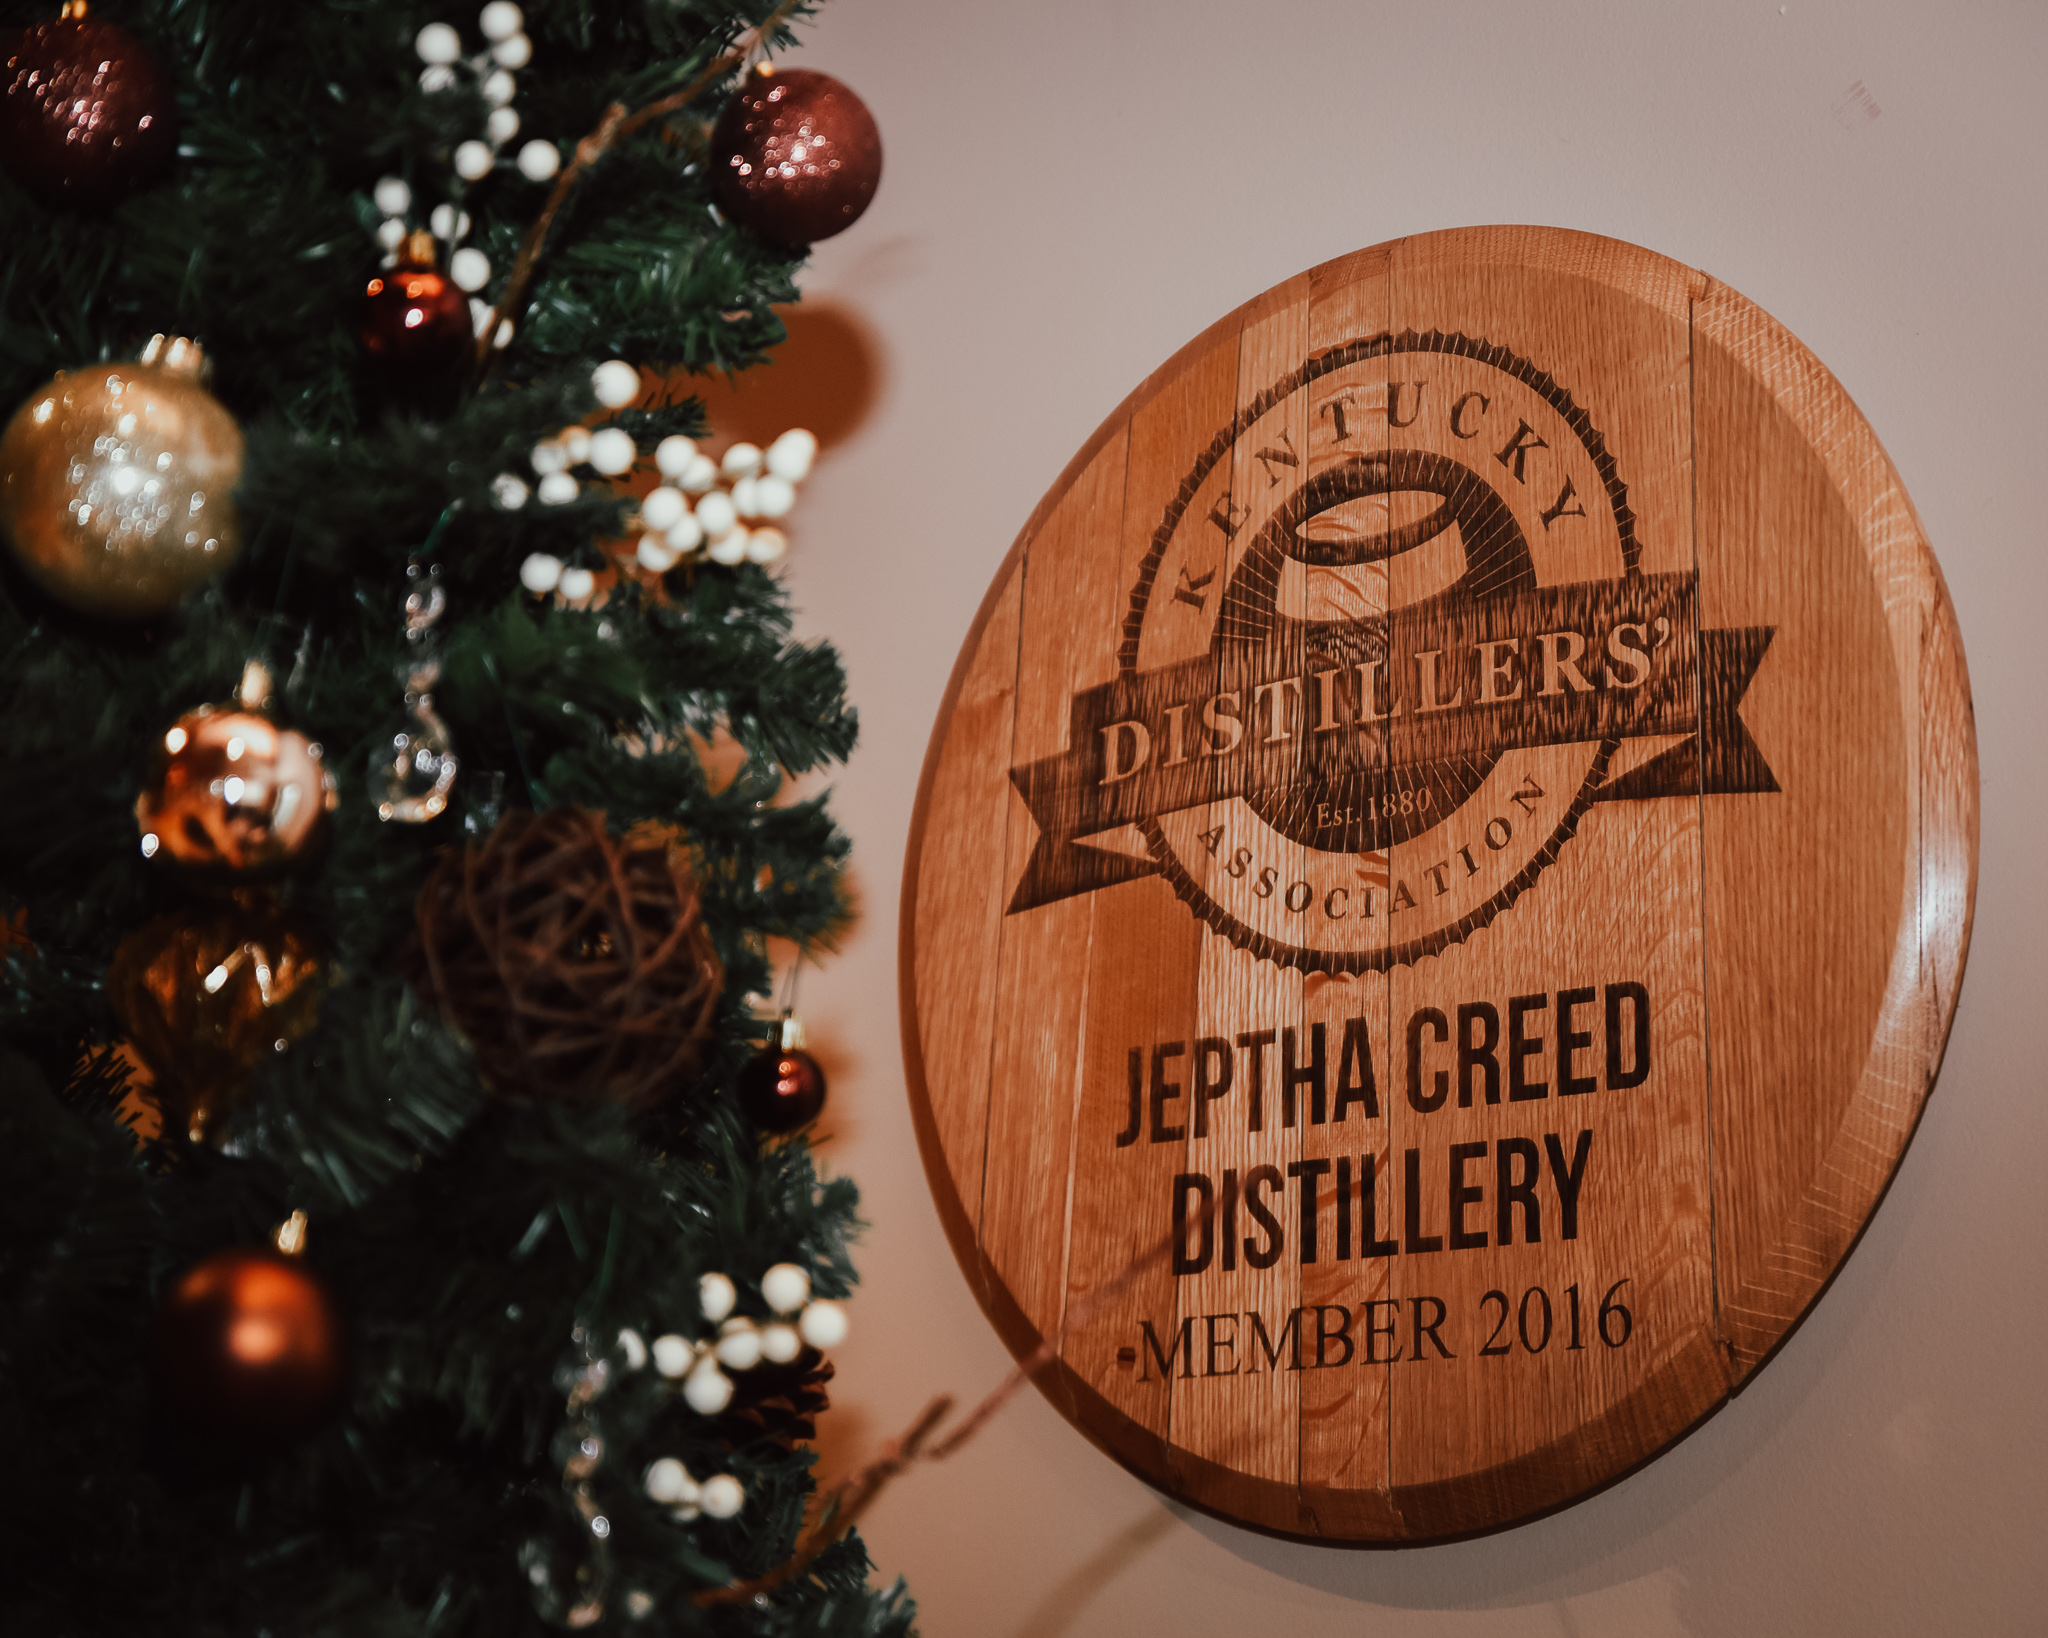 holiday-soiree-with-the-bluegrass-bloggers-jeptha-creed-19.jpg